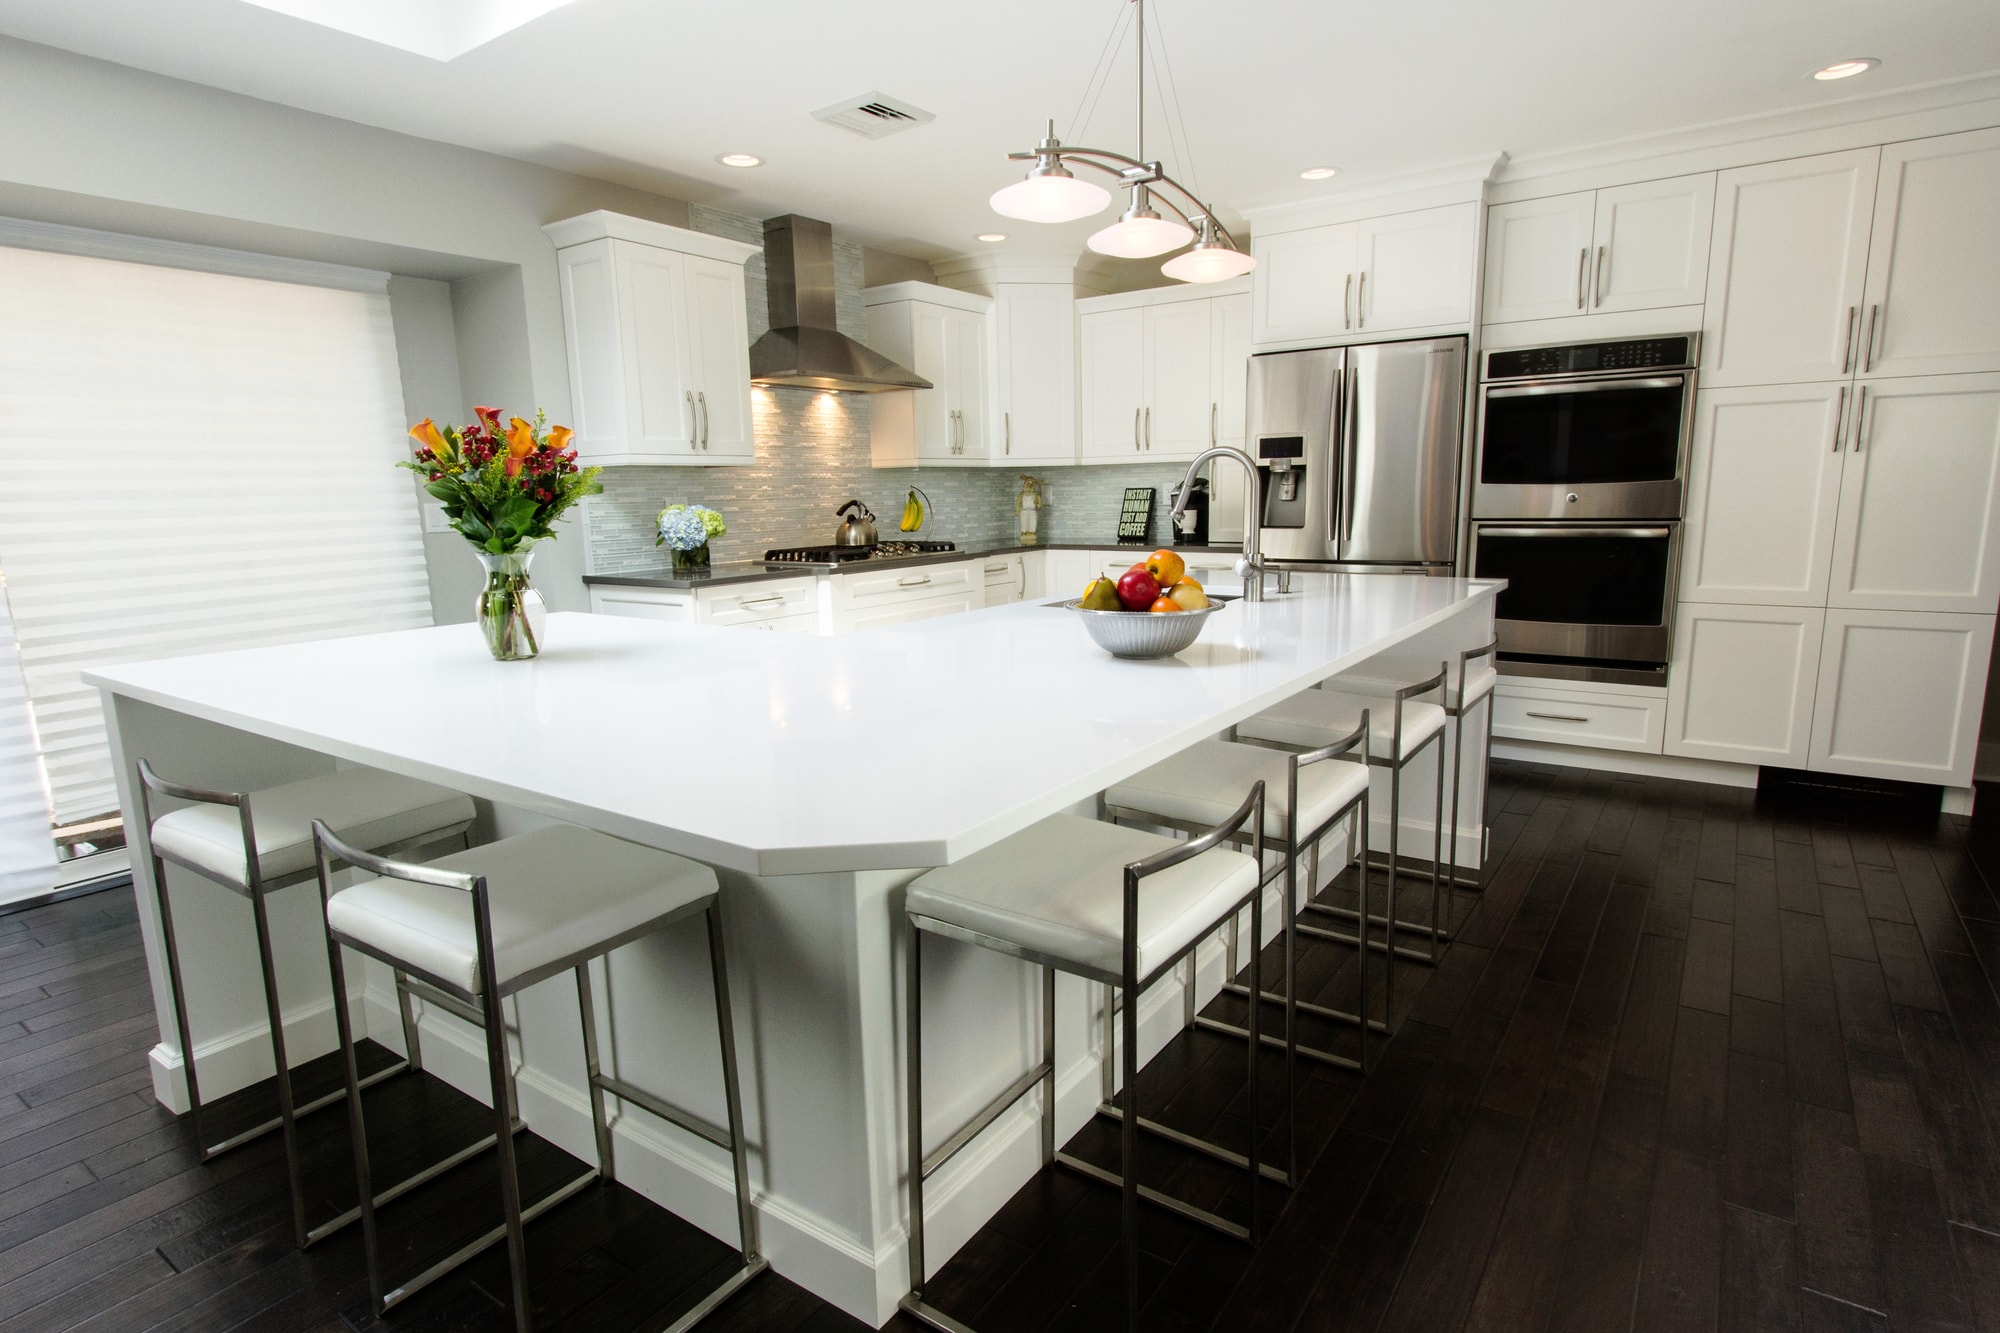 Transitional style kitchen with an L'Shaped kitchen island